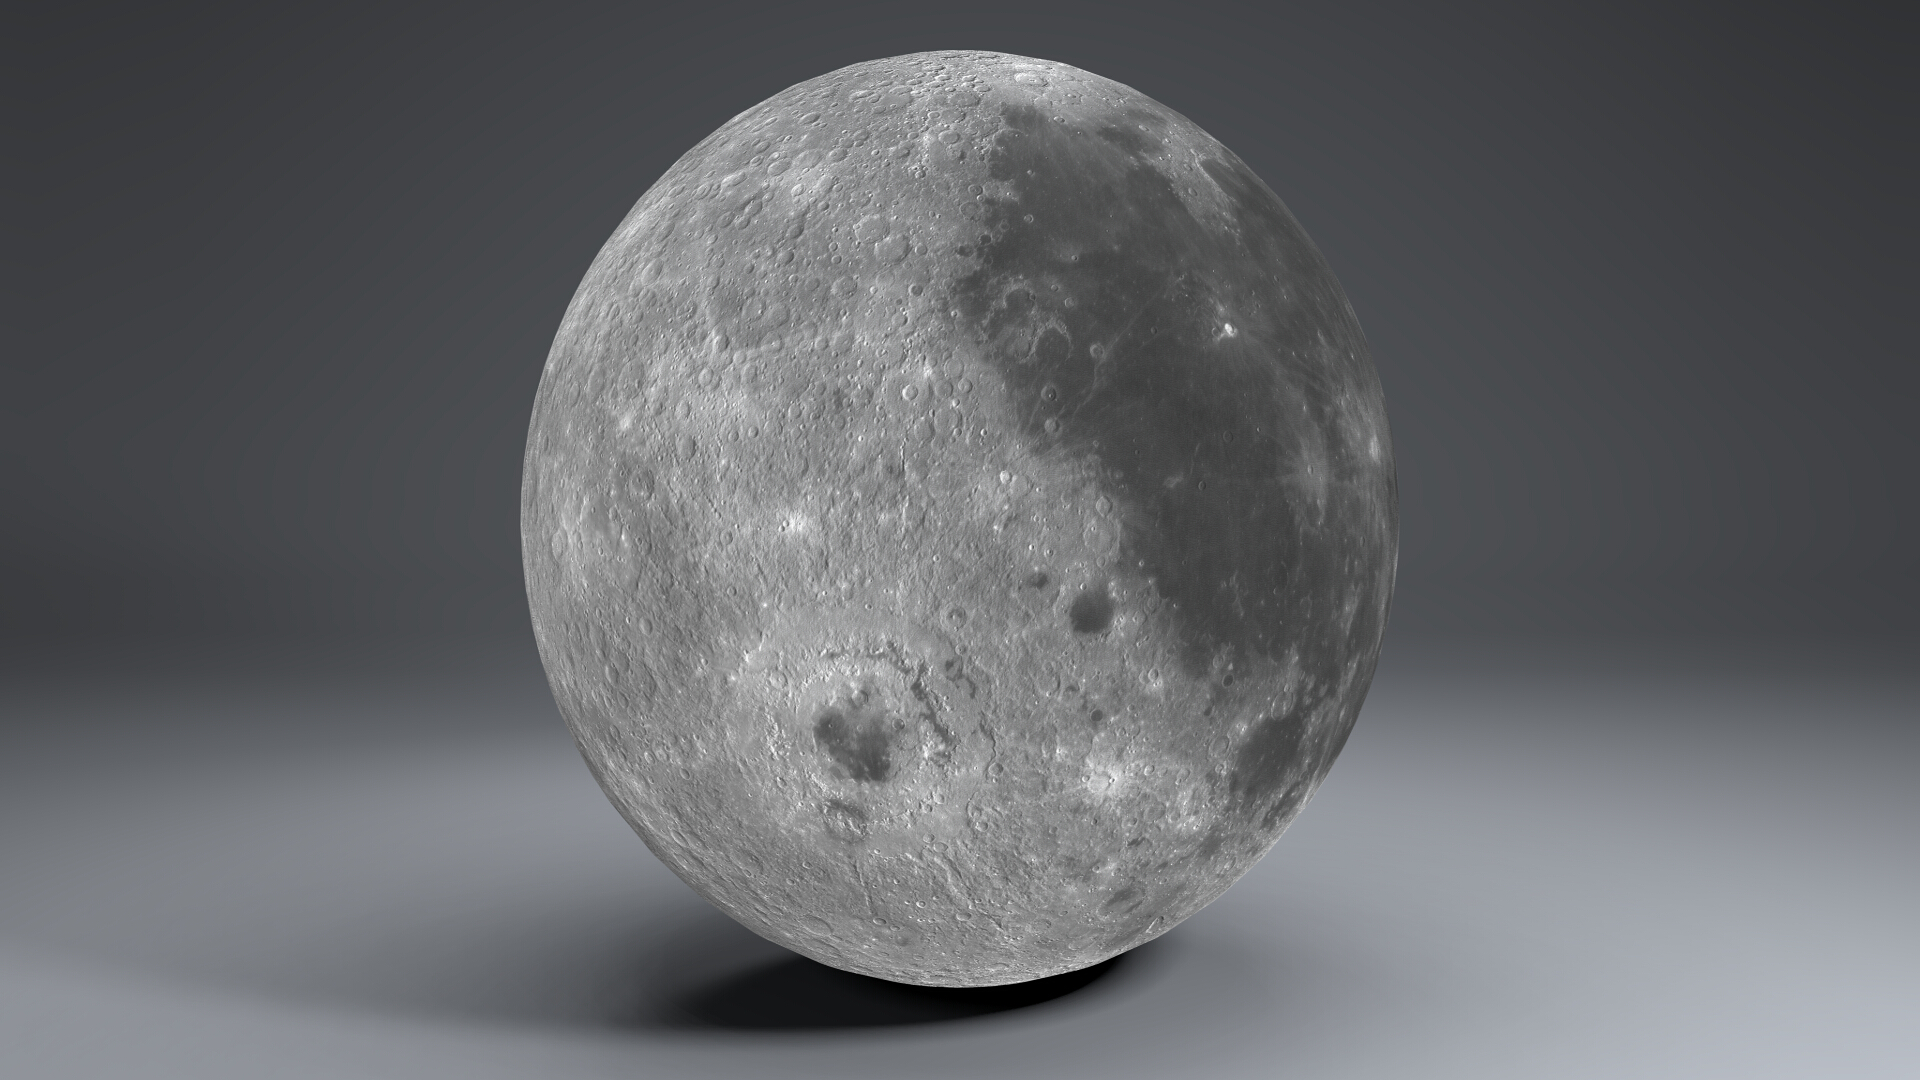 moon globe 11k 3d model 3ds fbx blend dae obj 221927